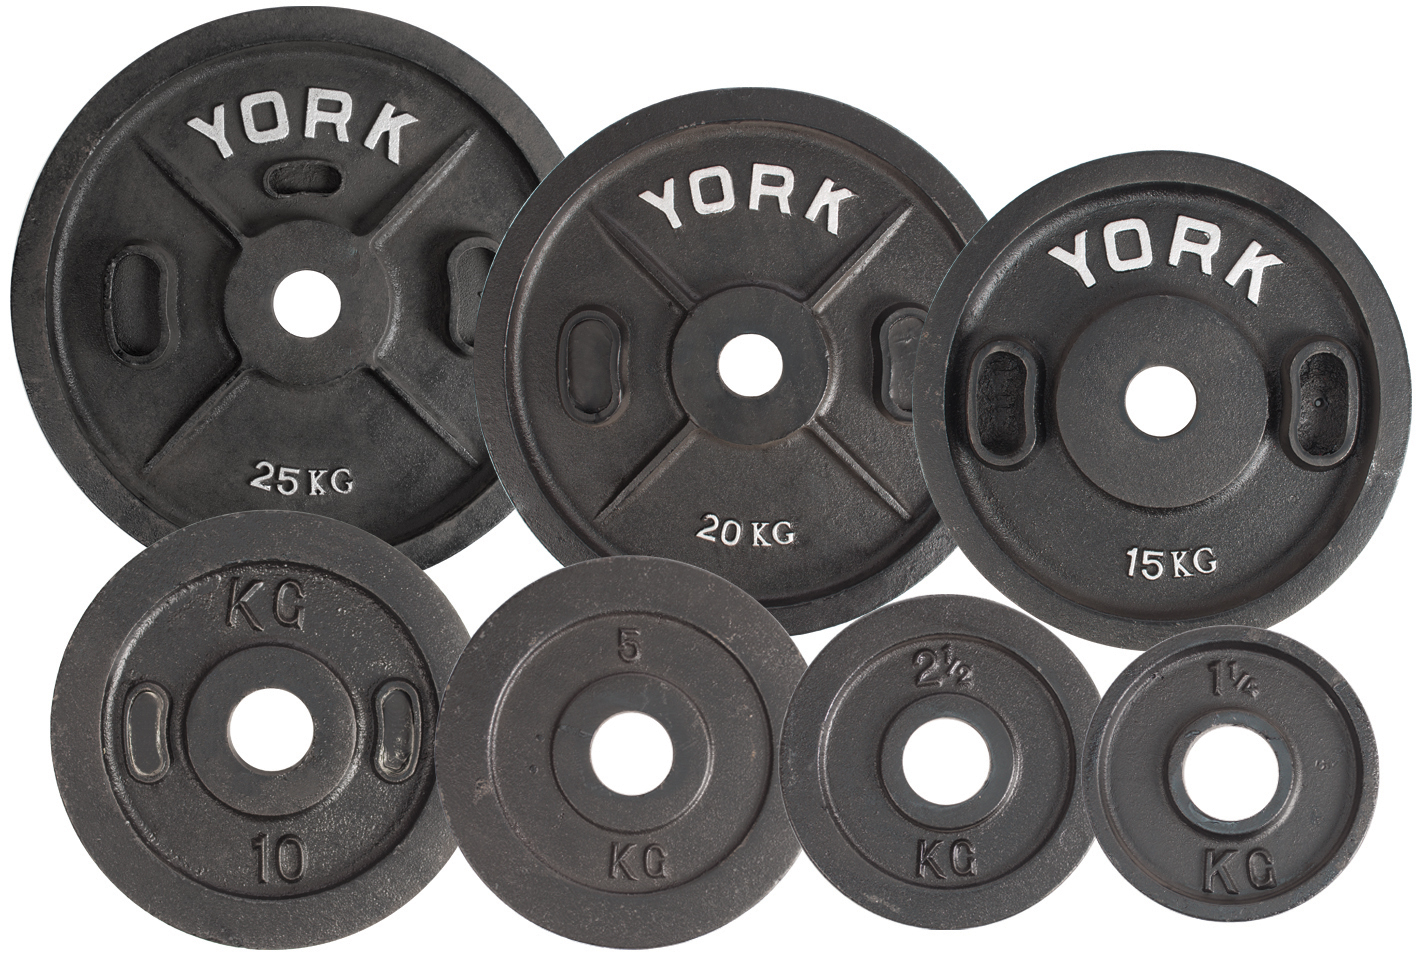 2 Quot Calibrated Kilo Olympic Plate Metric York Barbell